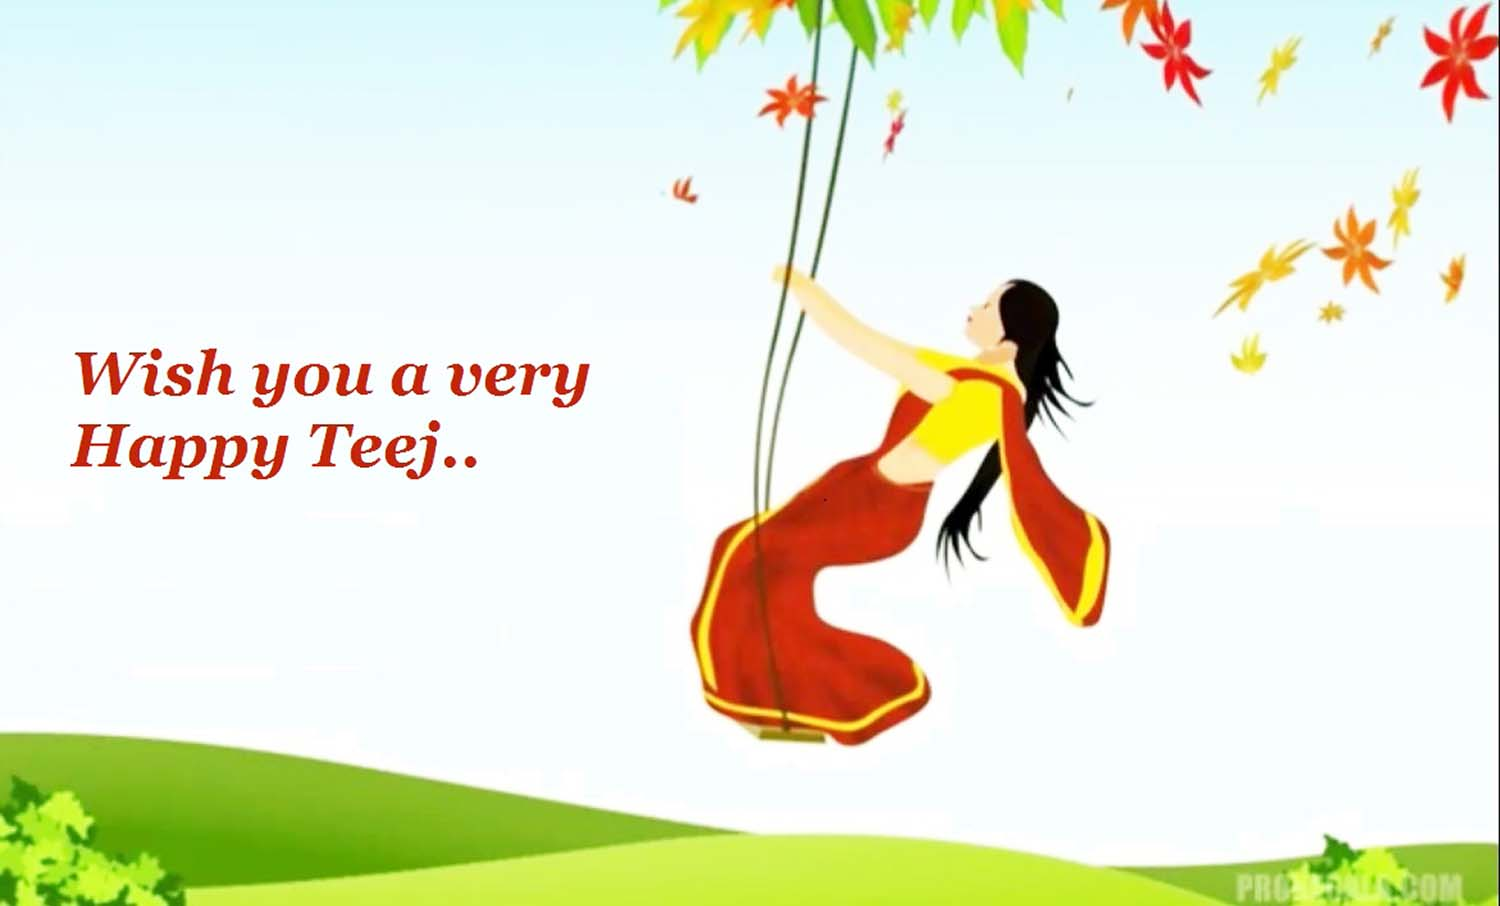 Happy Sawan Teej Images, Pictures And Wallpapers: Free